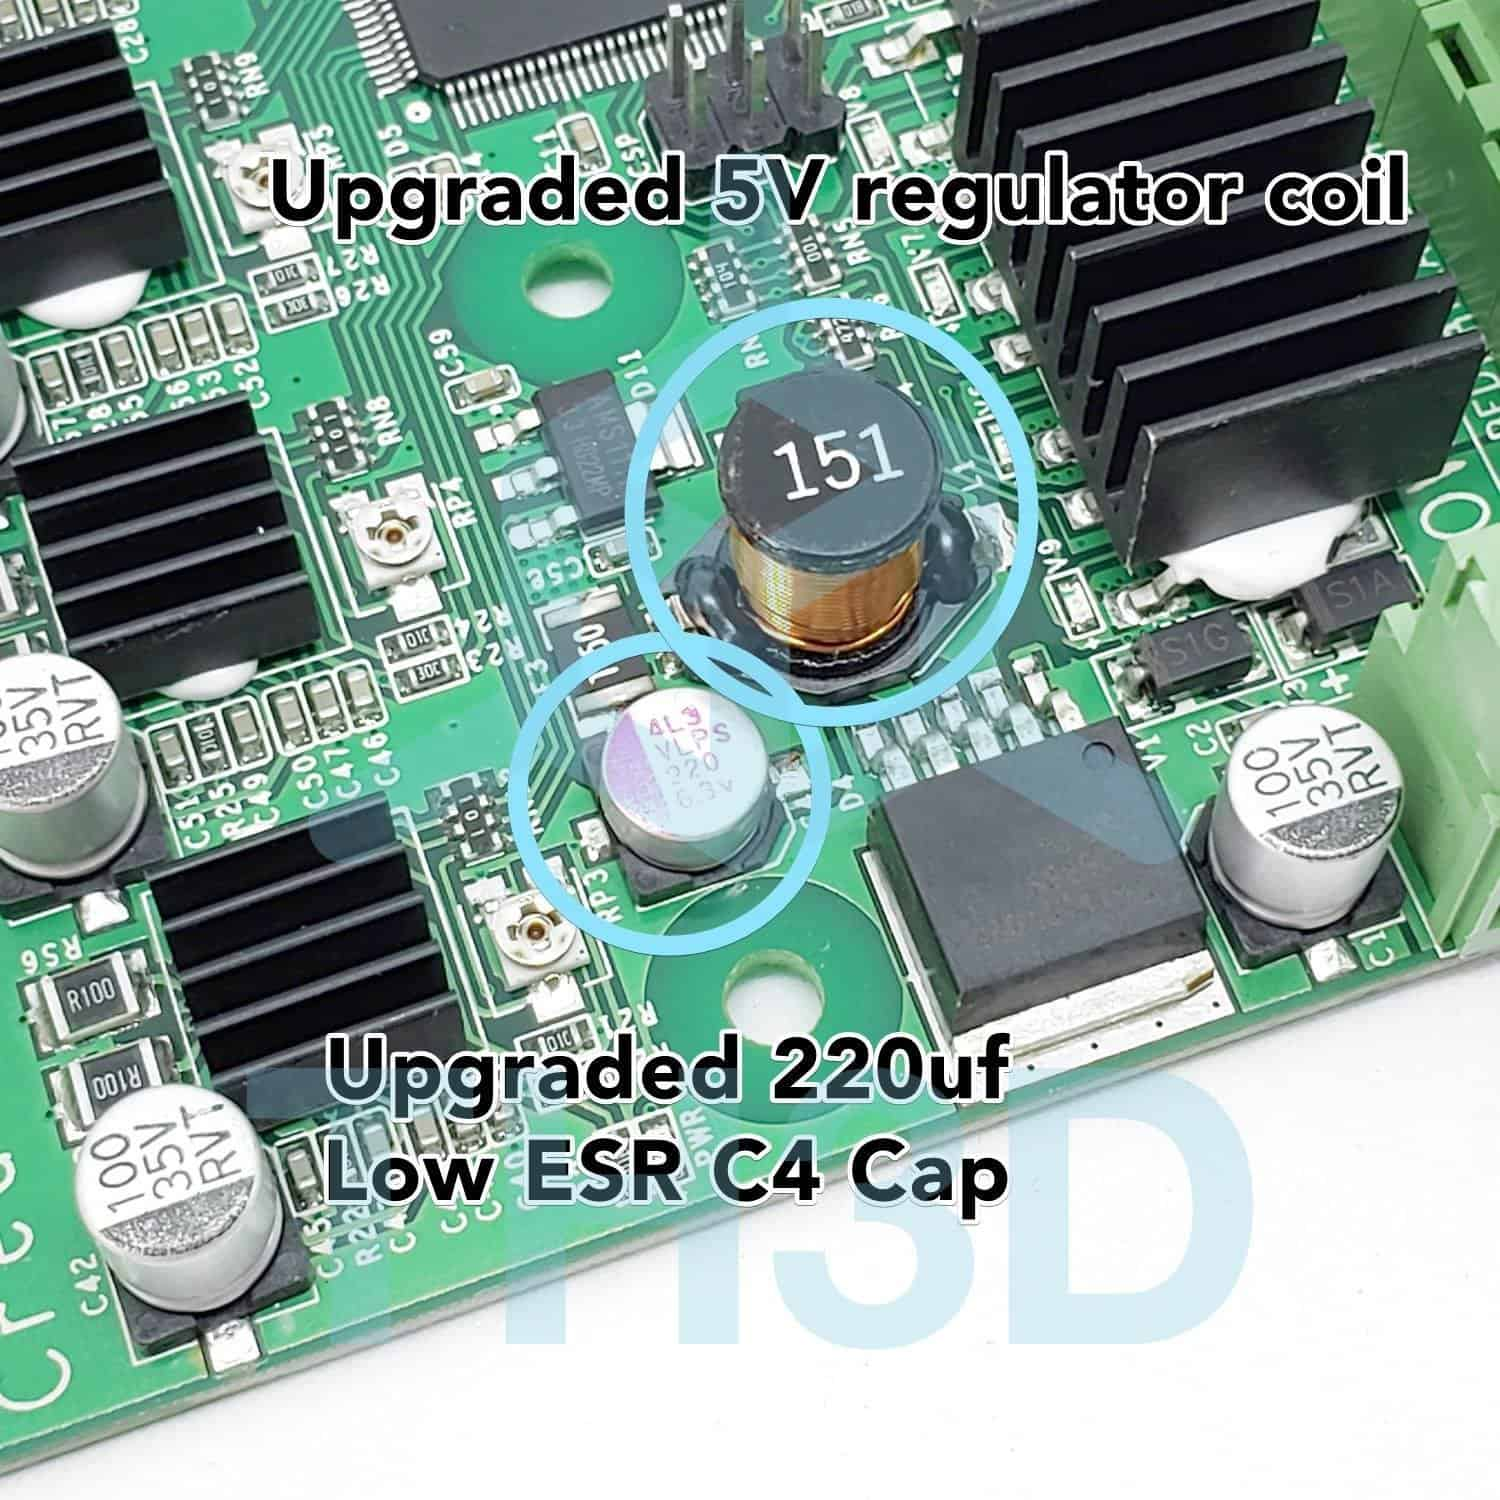 Creality Dual Extruder Upgrade Board (V2 1/V2 2) - 2nd E Motor & Cable  Included - CR-10/CR-10S/CR-20/Ender 3 - TH3D Studio LLC